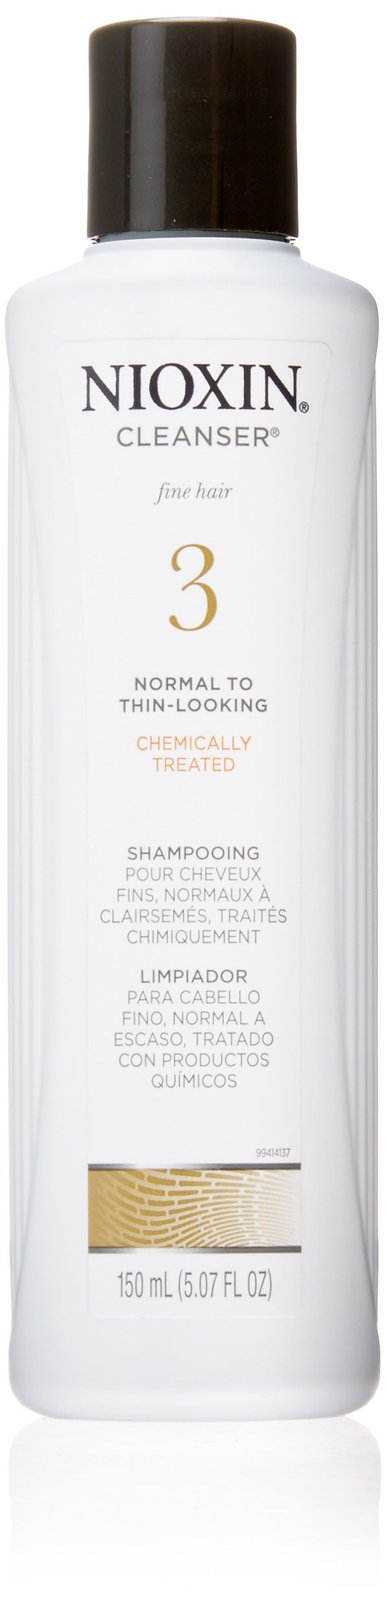 Nioxin System 3 Cleanser for Fine Hair 150ml 5.07 oz